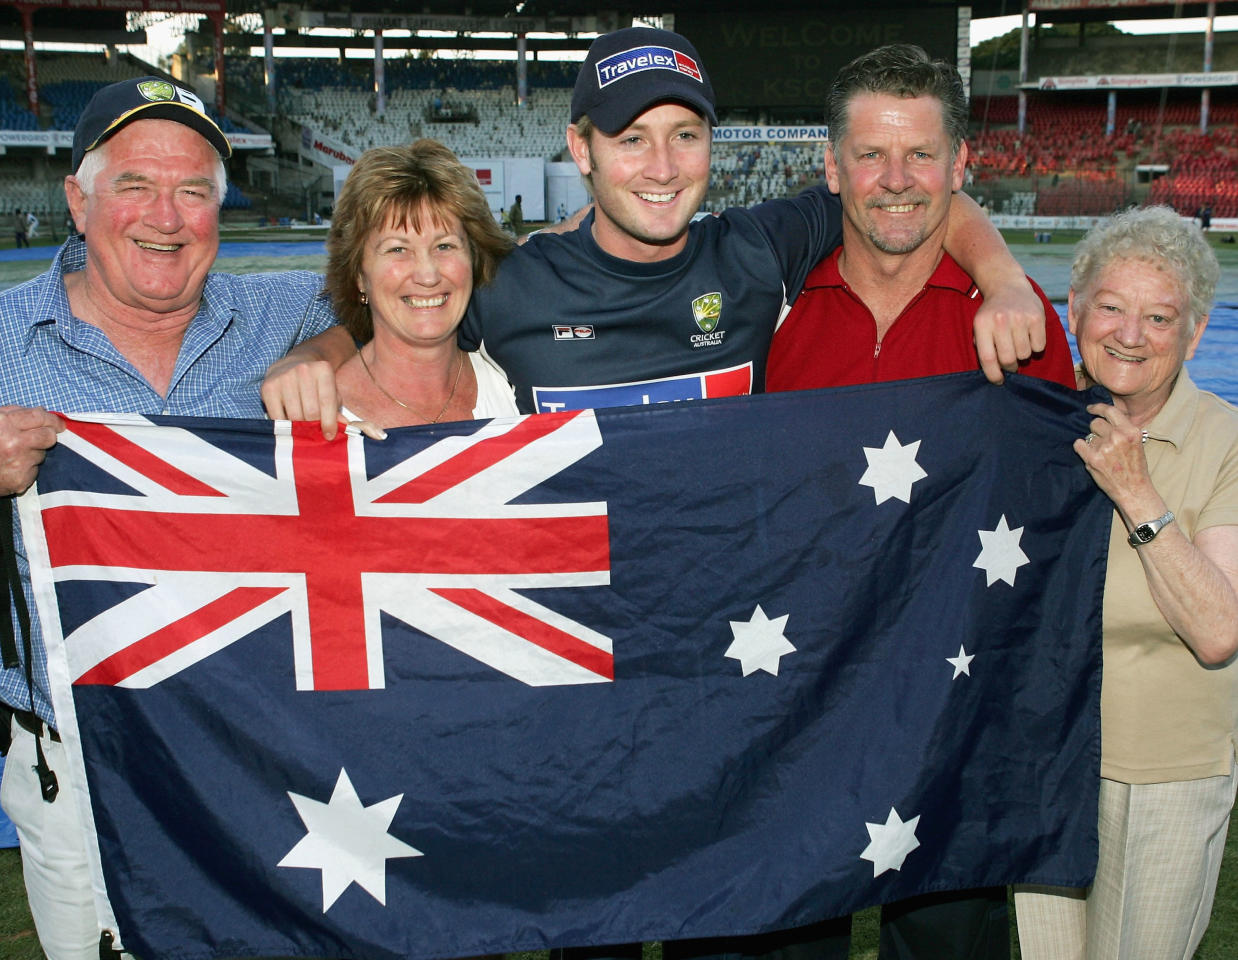 BANGALORE, INDIA - OCTOBER 7:  Michael Clarke of Australia with family (L - R) grandfather Ray, mother Debbie, Michael, father Les and grandmother June after Clarke made 151 on debut after day two of the First Test between India and Australia played at the Chinnaswamy Stadium on October 7, 2004 in Bangalore, India. (Photo by Hamish Blair/Getty Images)